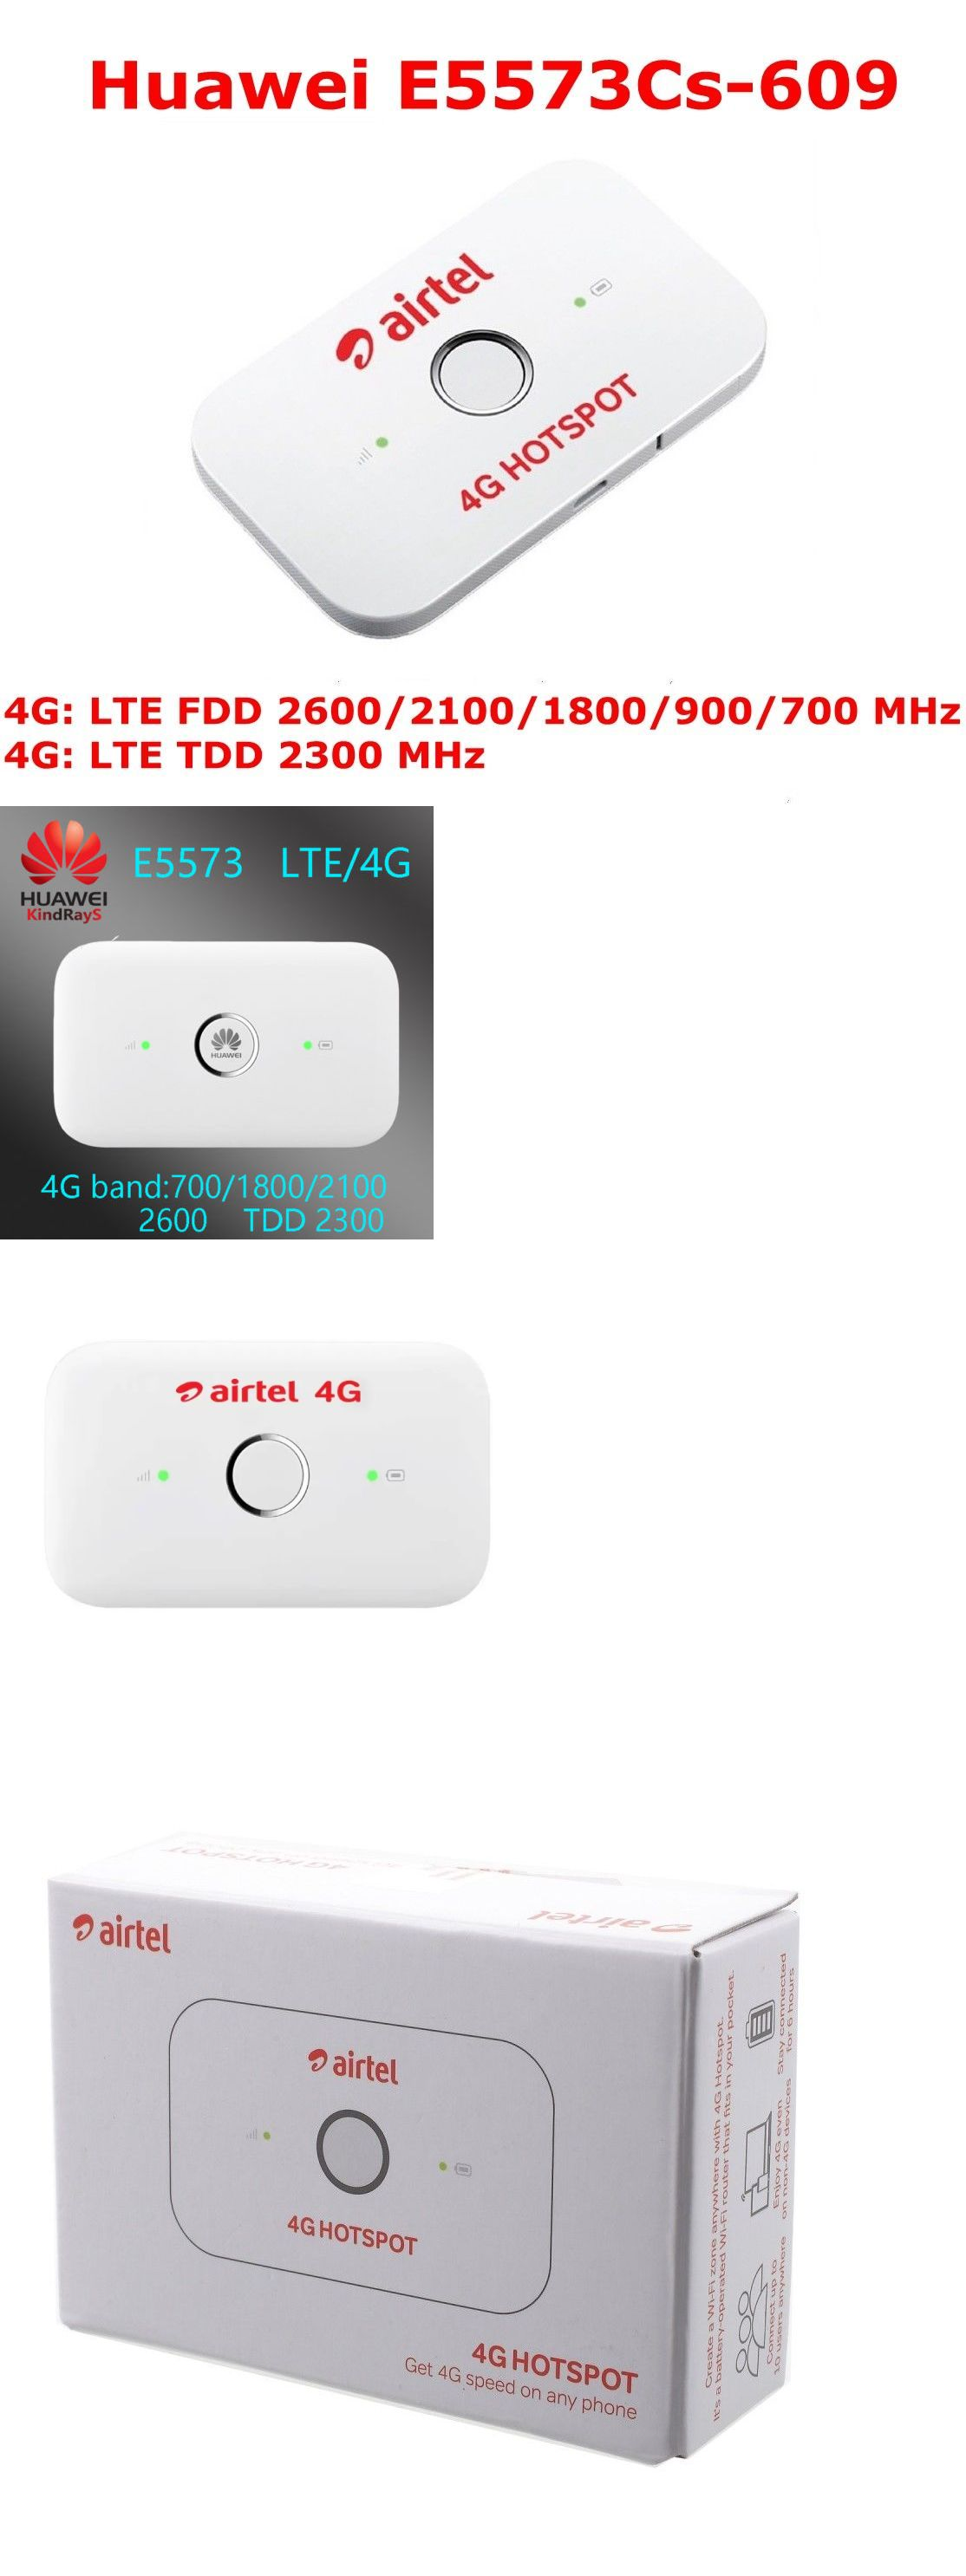 Mobile Broadband Devices 175710: Unlocked Huawei E5573s-609 Lte Fdd